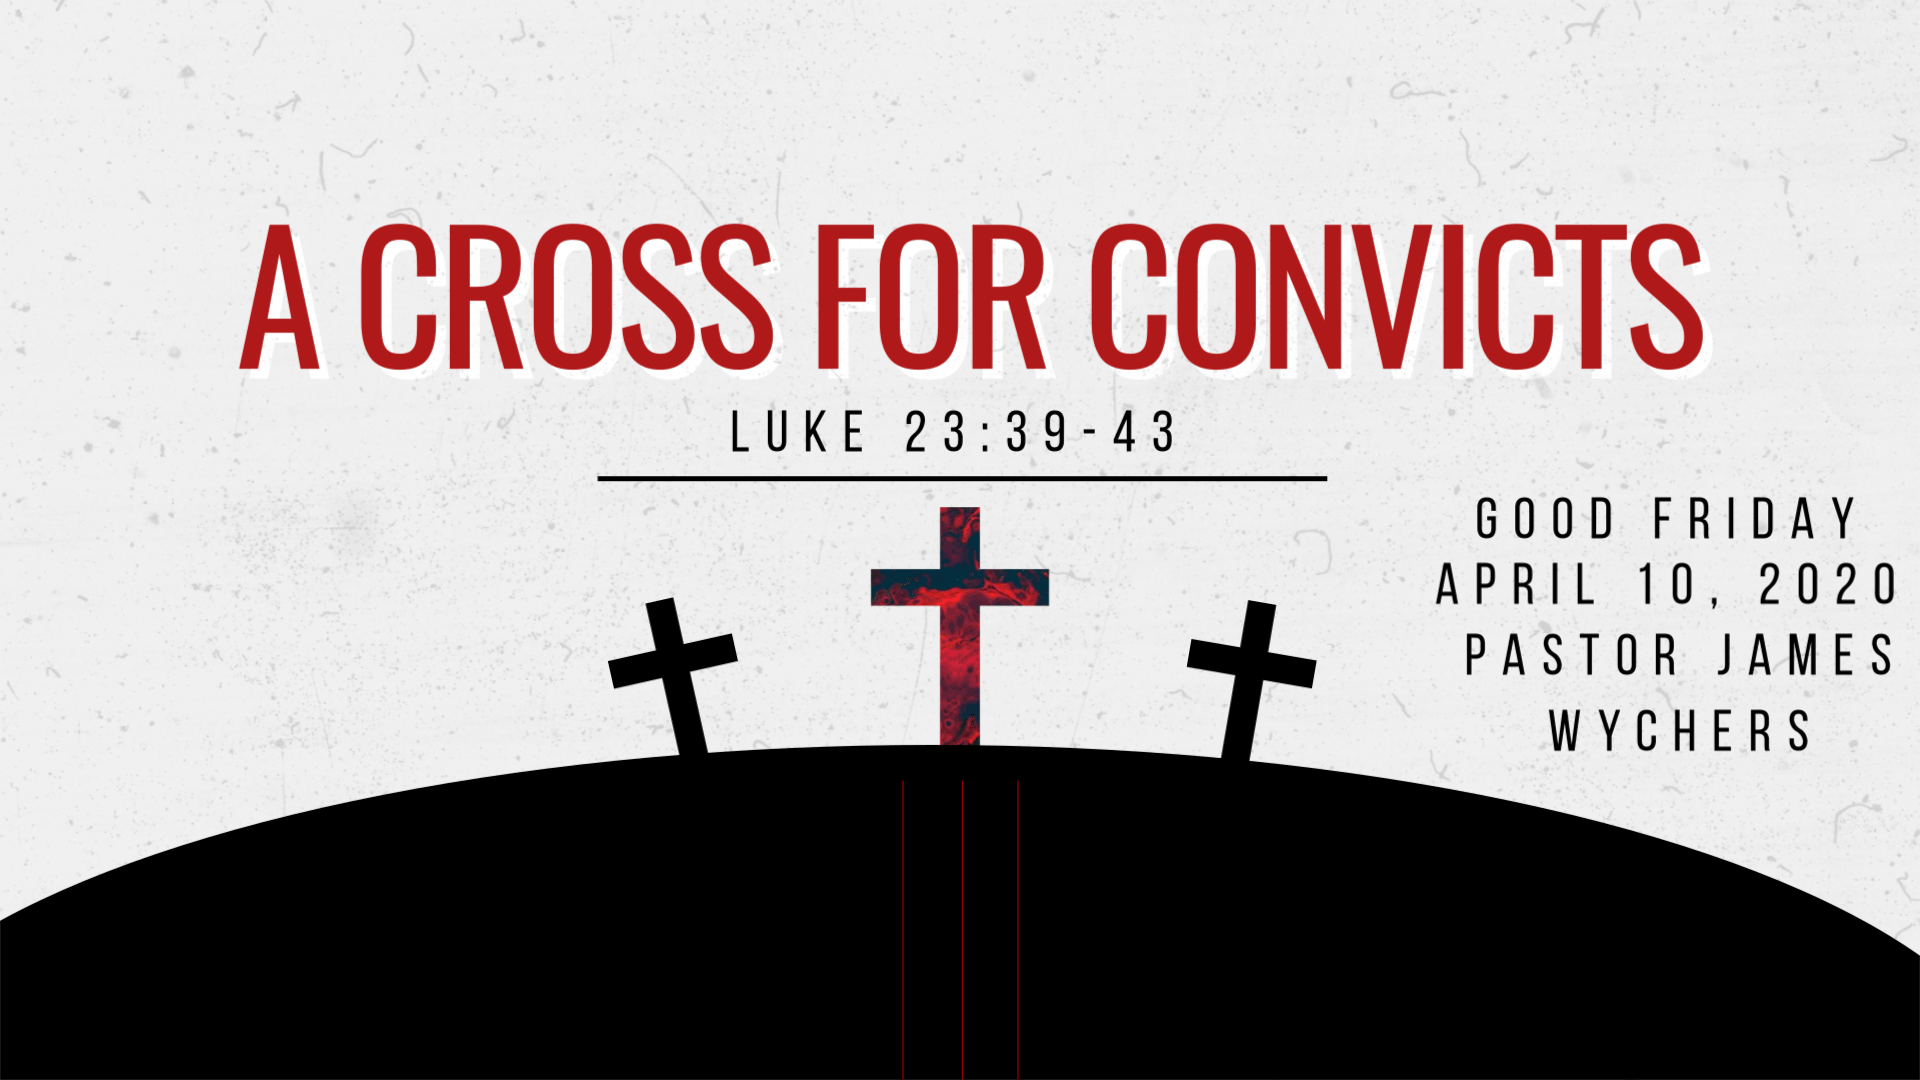 A_Cross_for_Convicts (1)-min